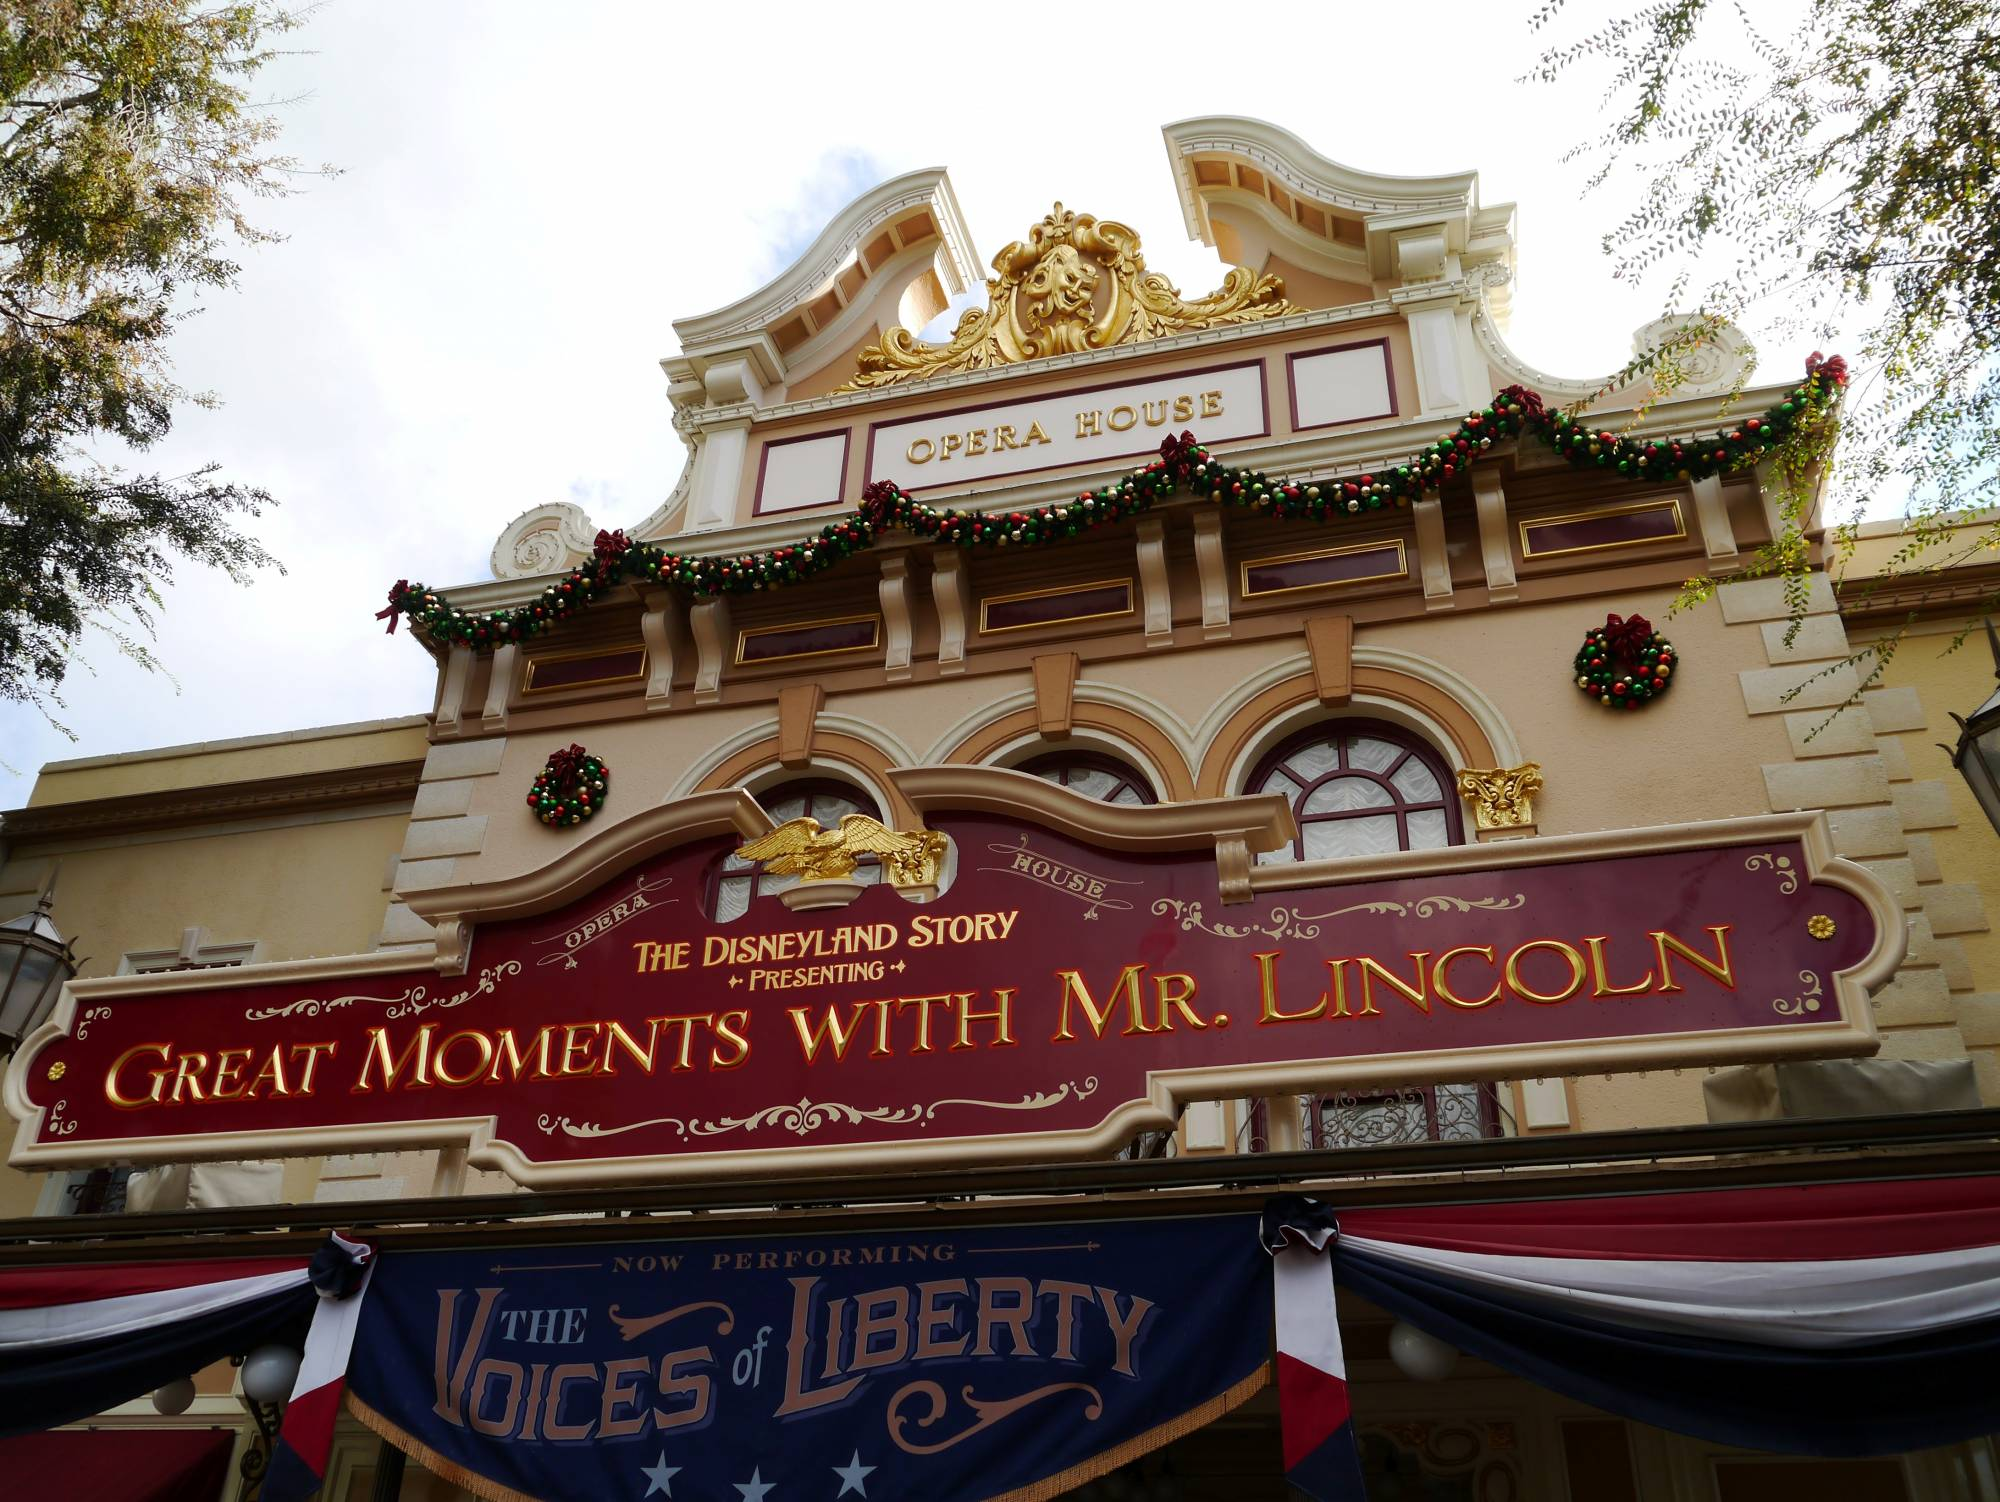 Explore a classic Disneyland attraction - Great Moments with Mr. Lincoln |PassPorter.com